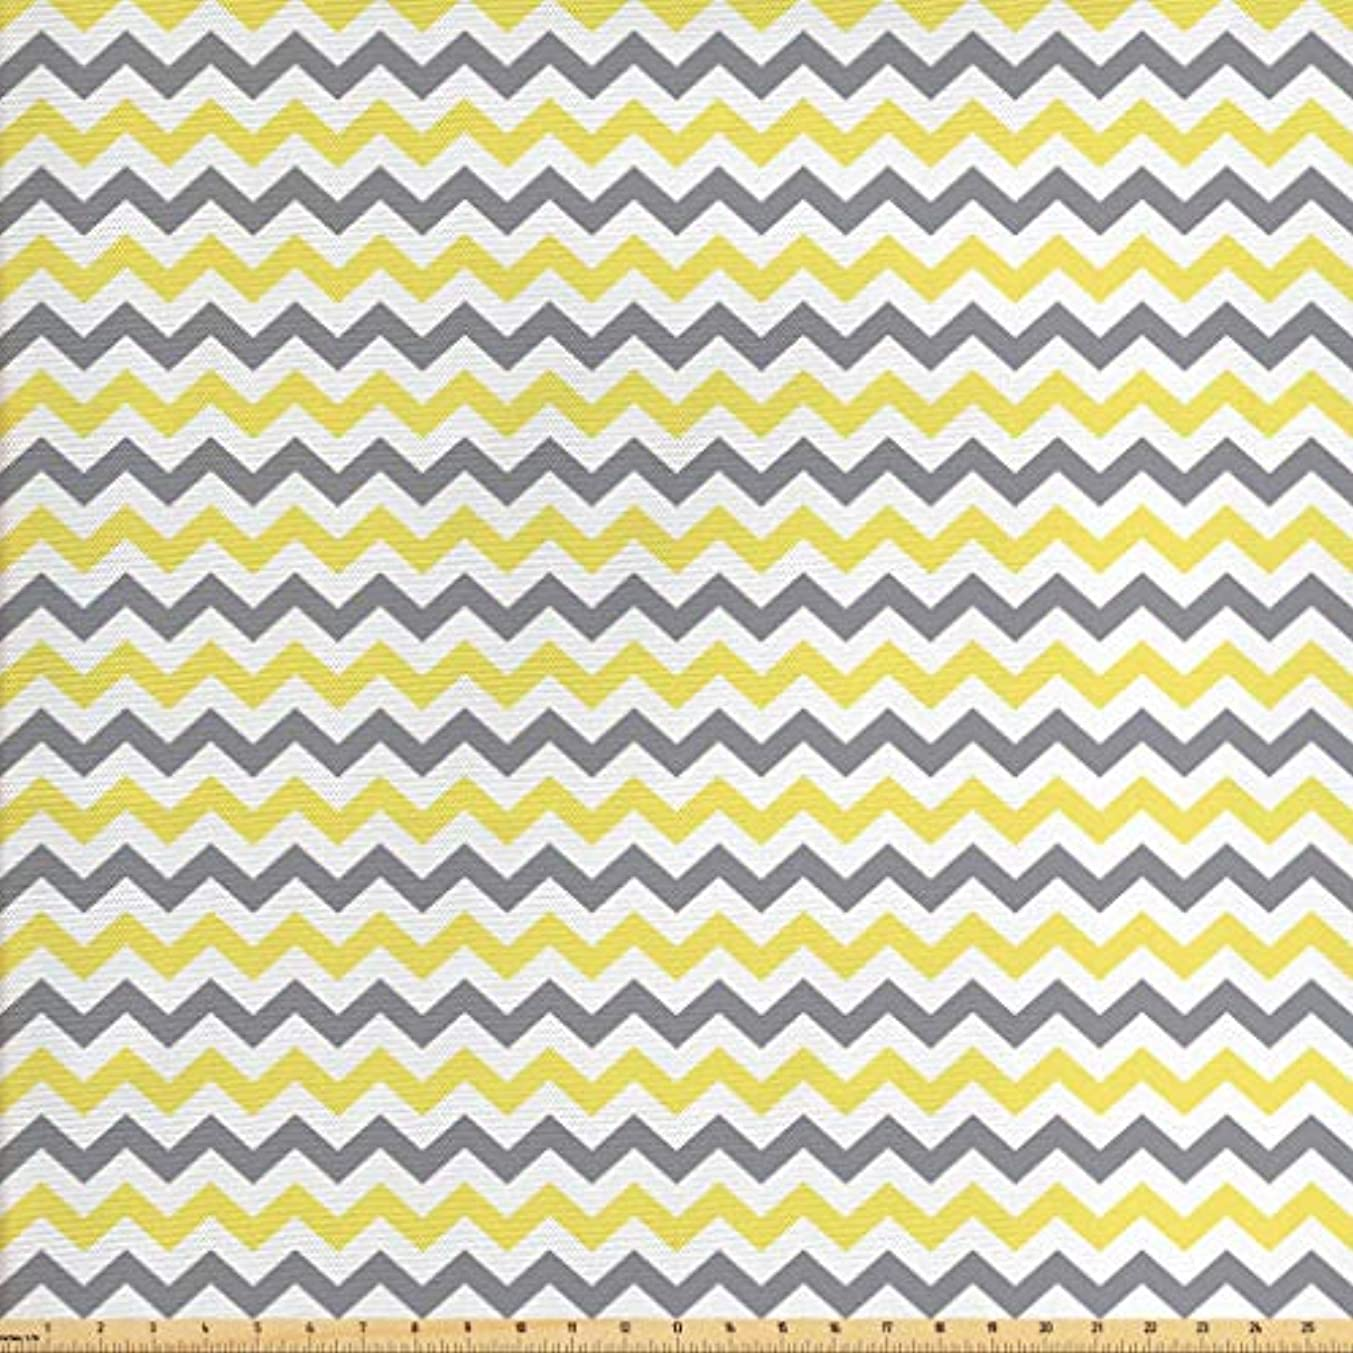 Lunarable Geometric Fabric by The Yard, Horizontal Chevron Pattern Zigzag Endless Simplicity Artful Design Print, Decorative Fabric for Upholstery and Home Accents, 2 Yards, Grey Yellow White